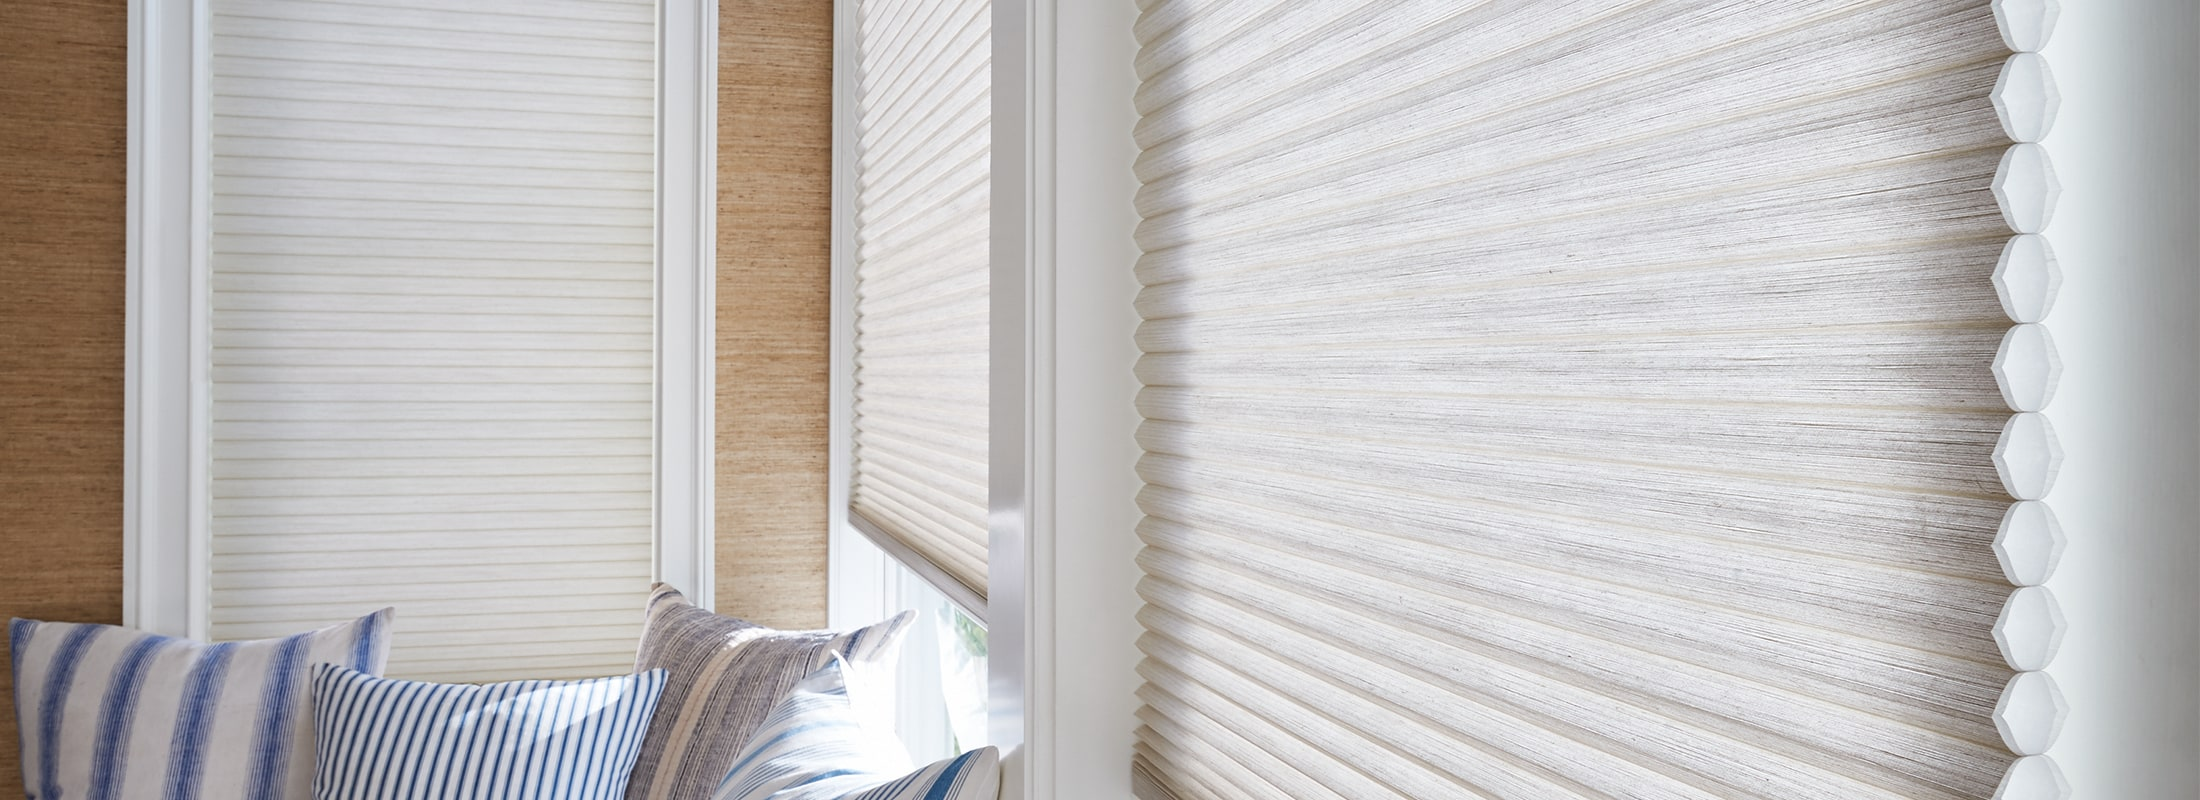 Get Duette® Honeycomb Shades by Hunter Douglas at The Blinds Man